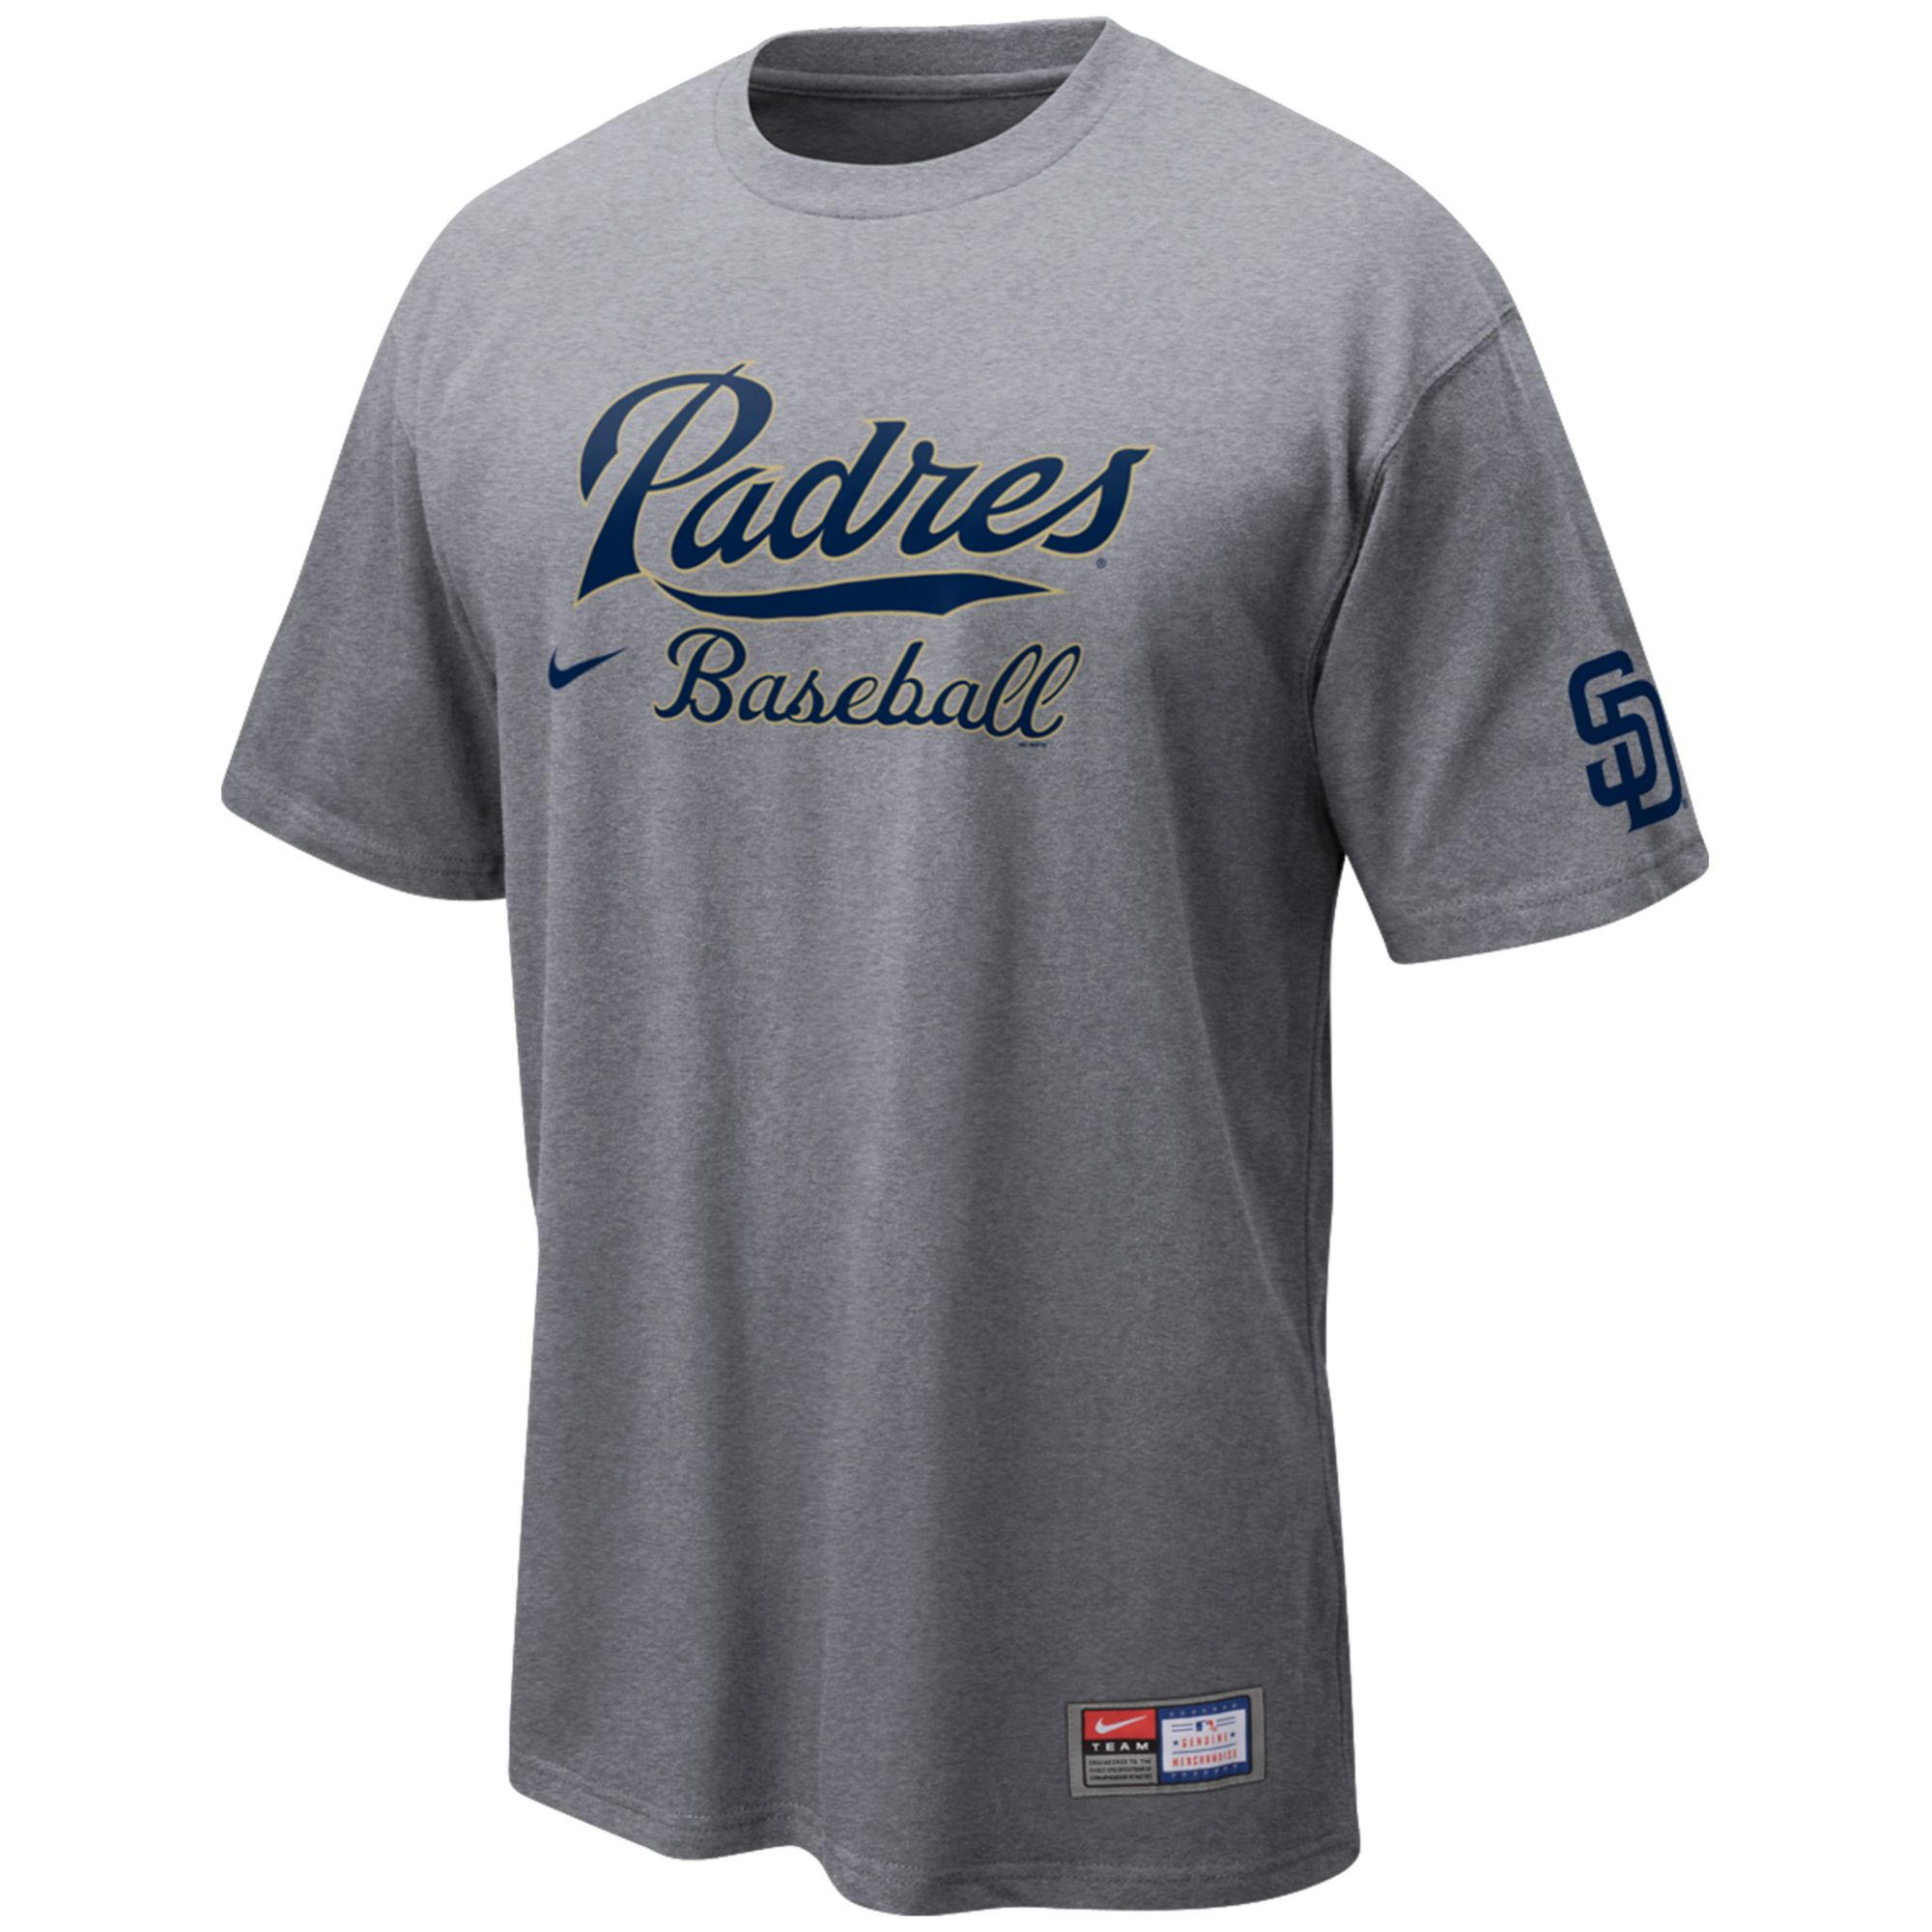 Mens San Diego Chargers Nike Navy Blue Facility T-Shirt